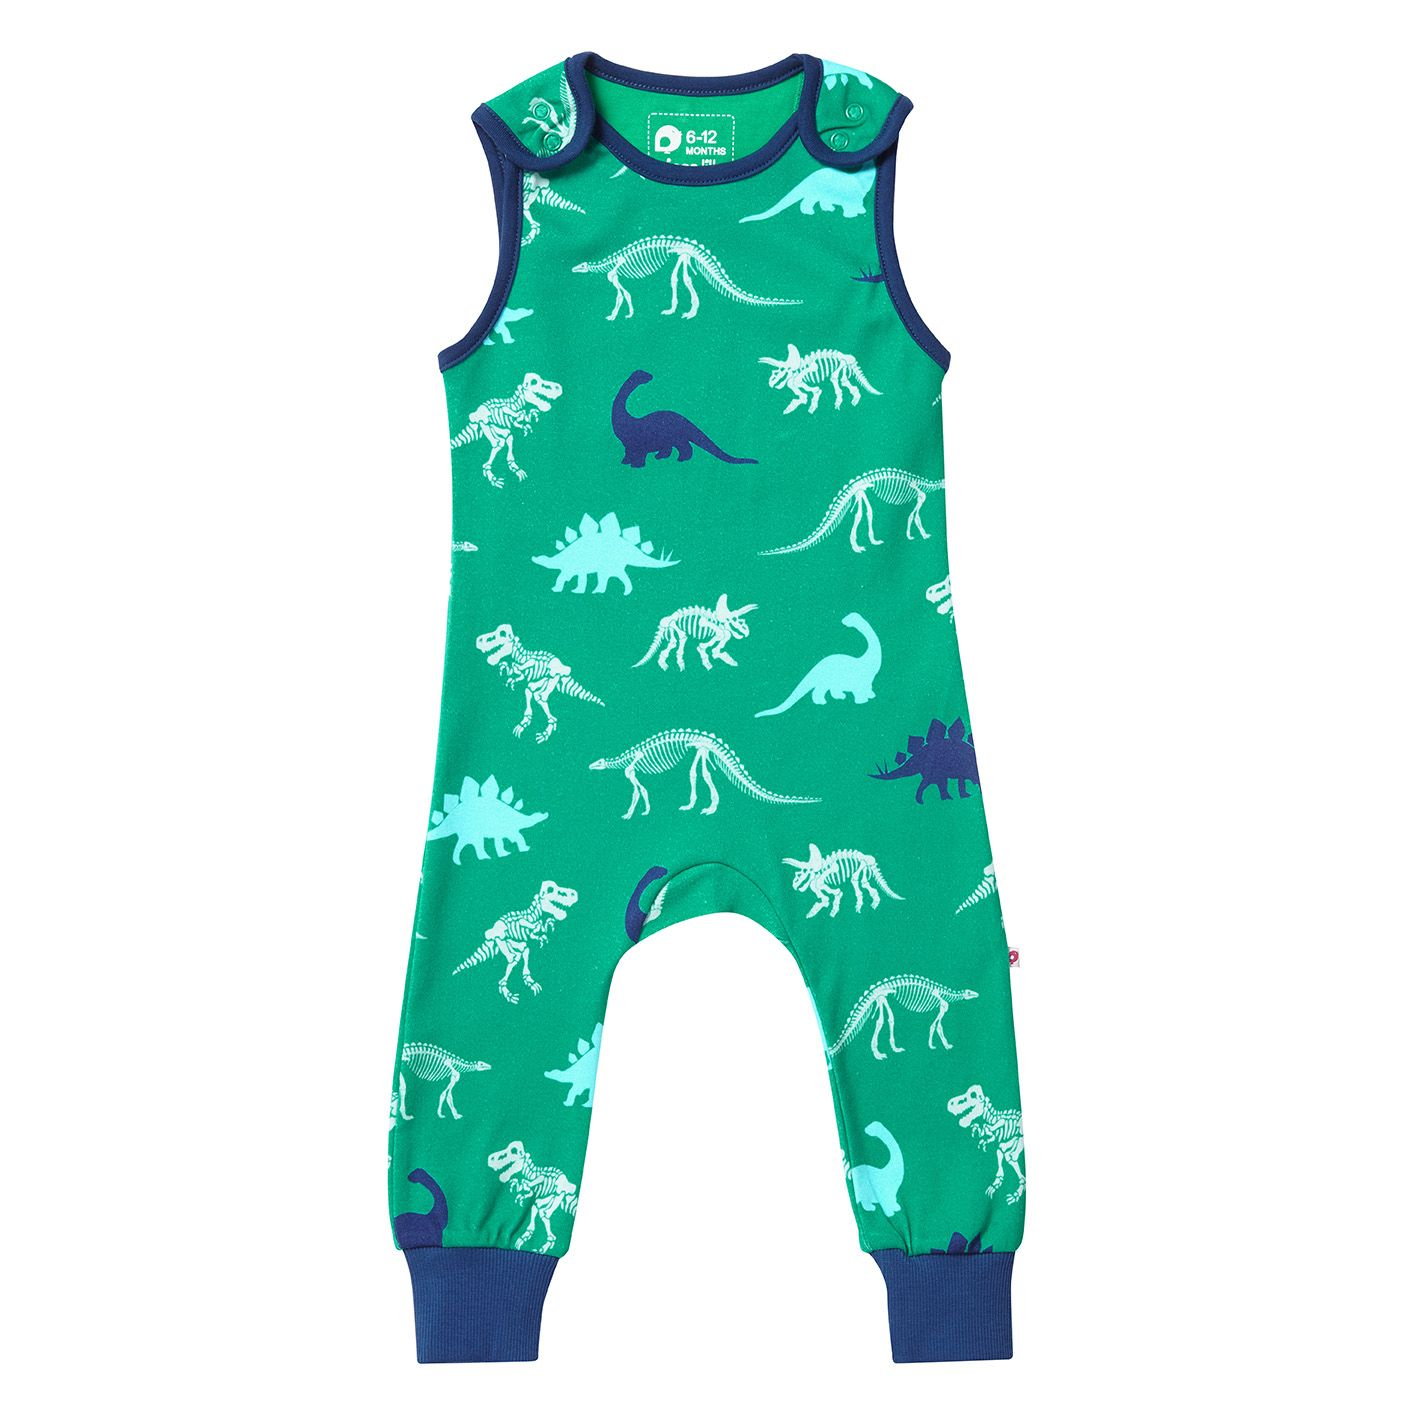 8329bddd9 Piccalilly Dinosaur Dungarees | Audrey Mansell